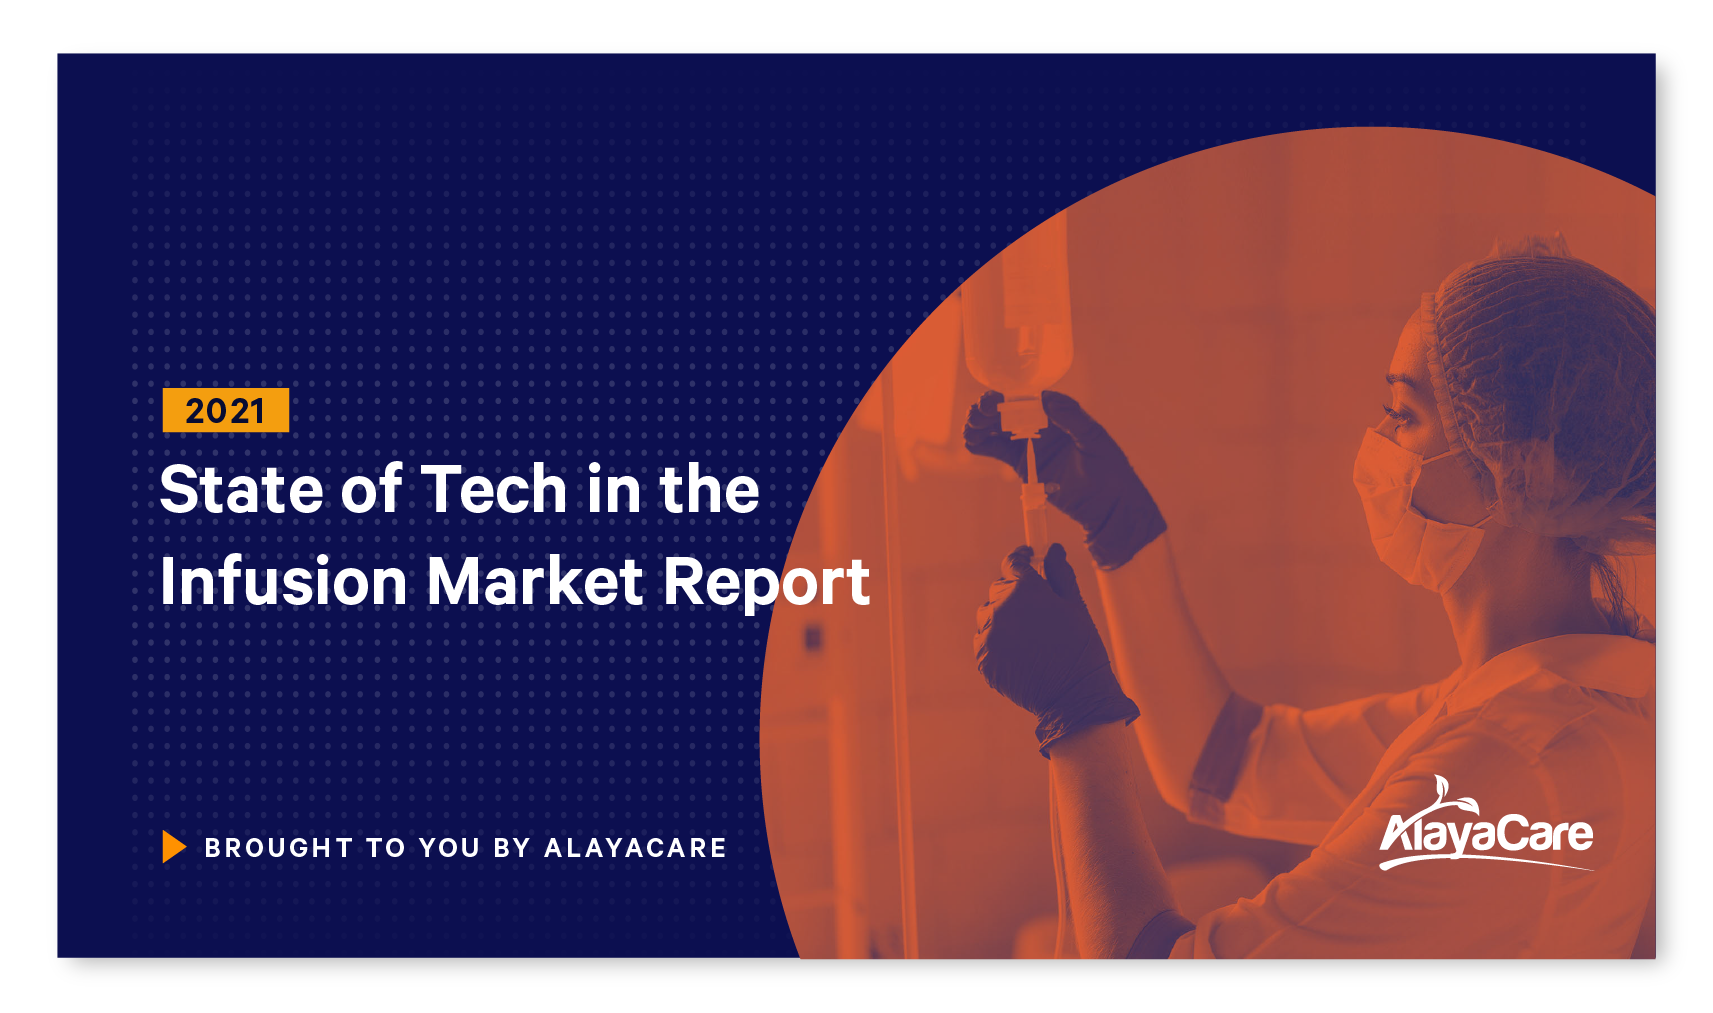 2021 State of Tech in the Infusion Market Report